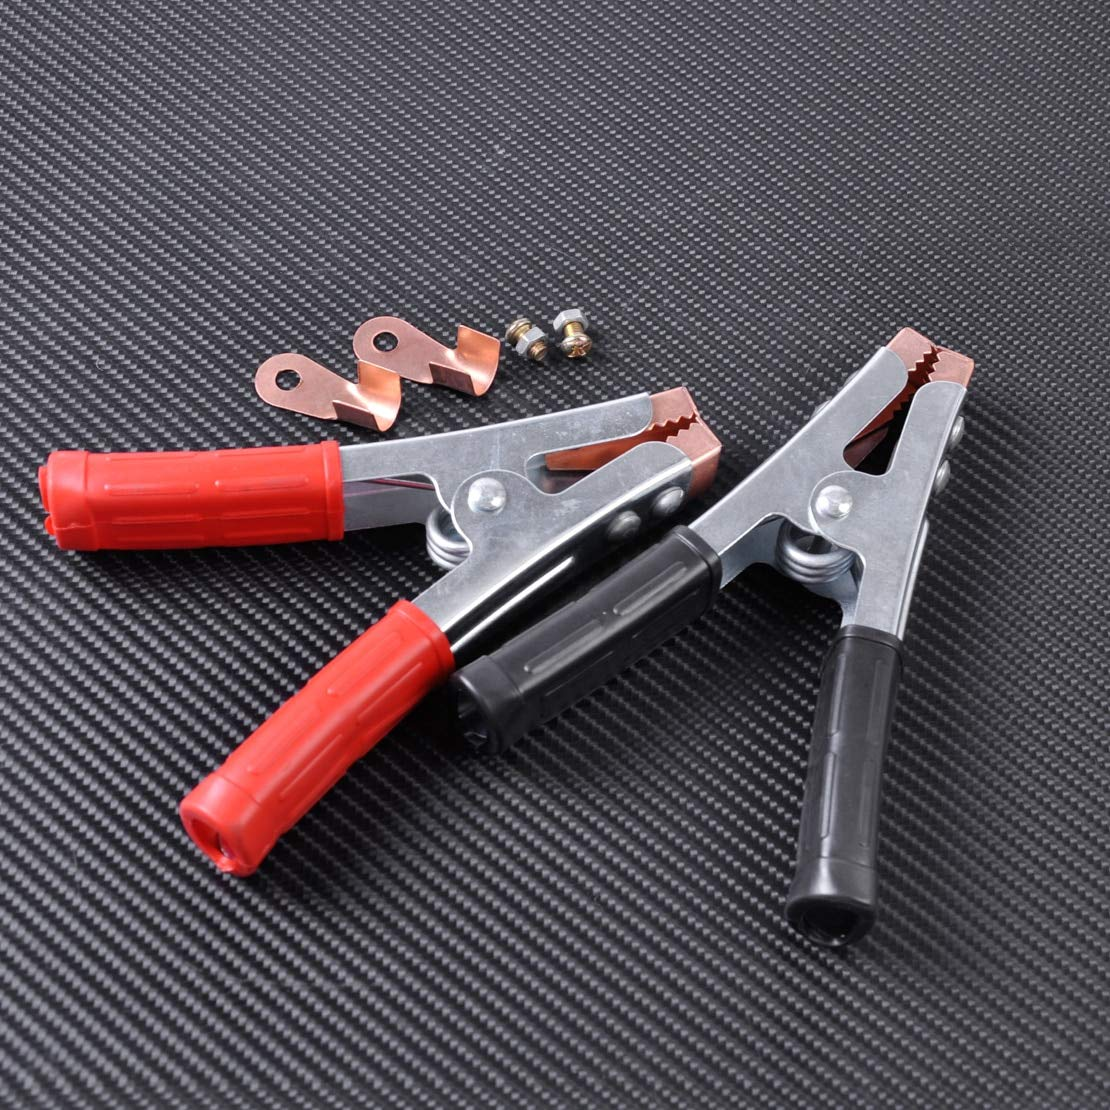 2Pcs 100 Amp Car Crocodile Heavy Duty Jump Lead Clamp Clip+Copper Connector Universal For Jumper Booster Cables by TX-CONSUMER